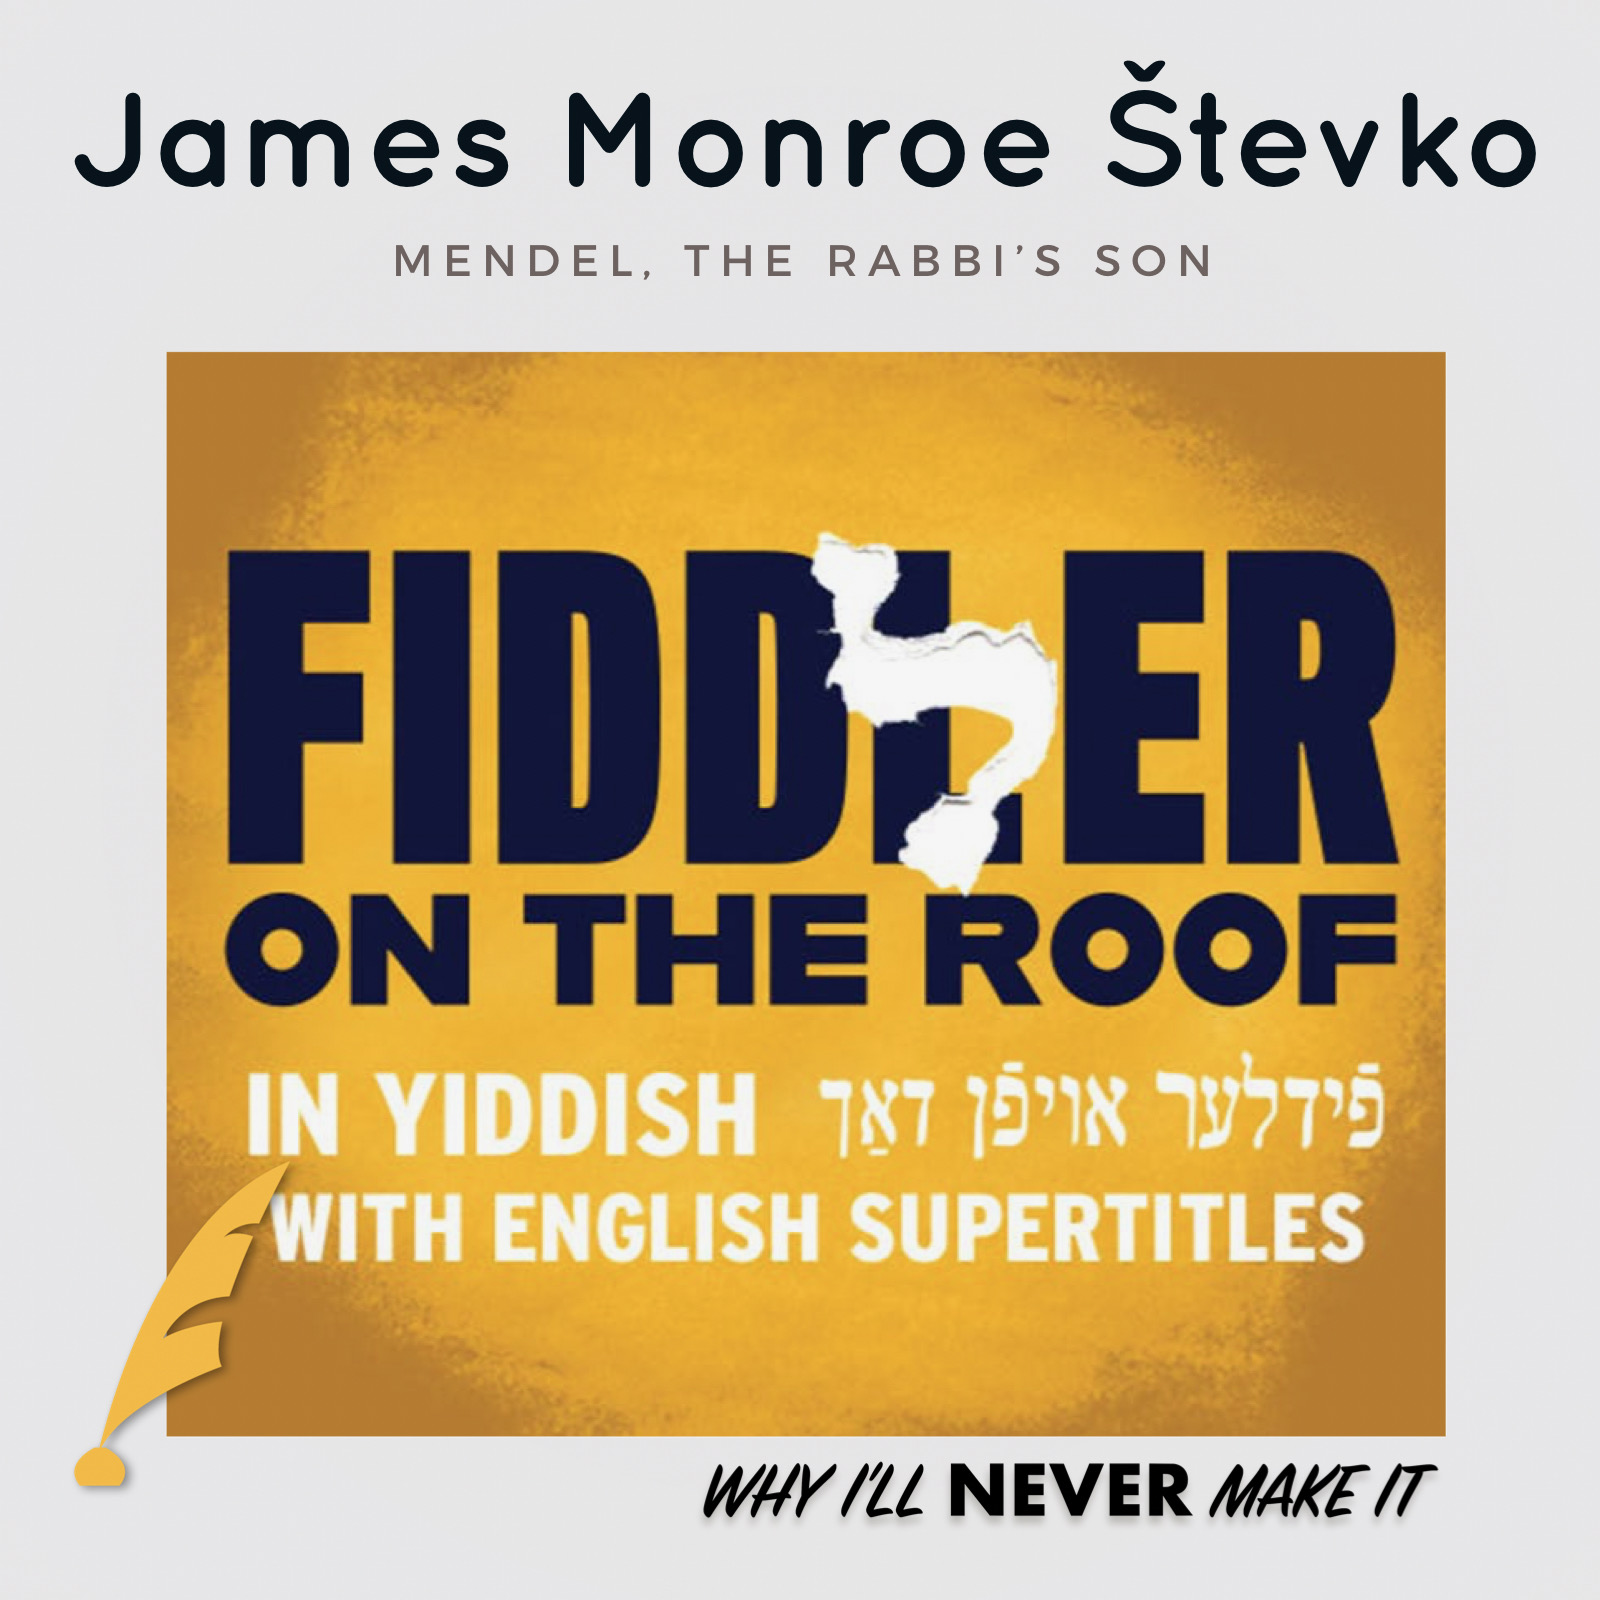 FIDDLER ON THE ROOF (IN YIDDISH) with James Monroe Stevko